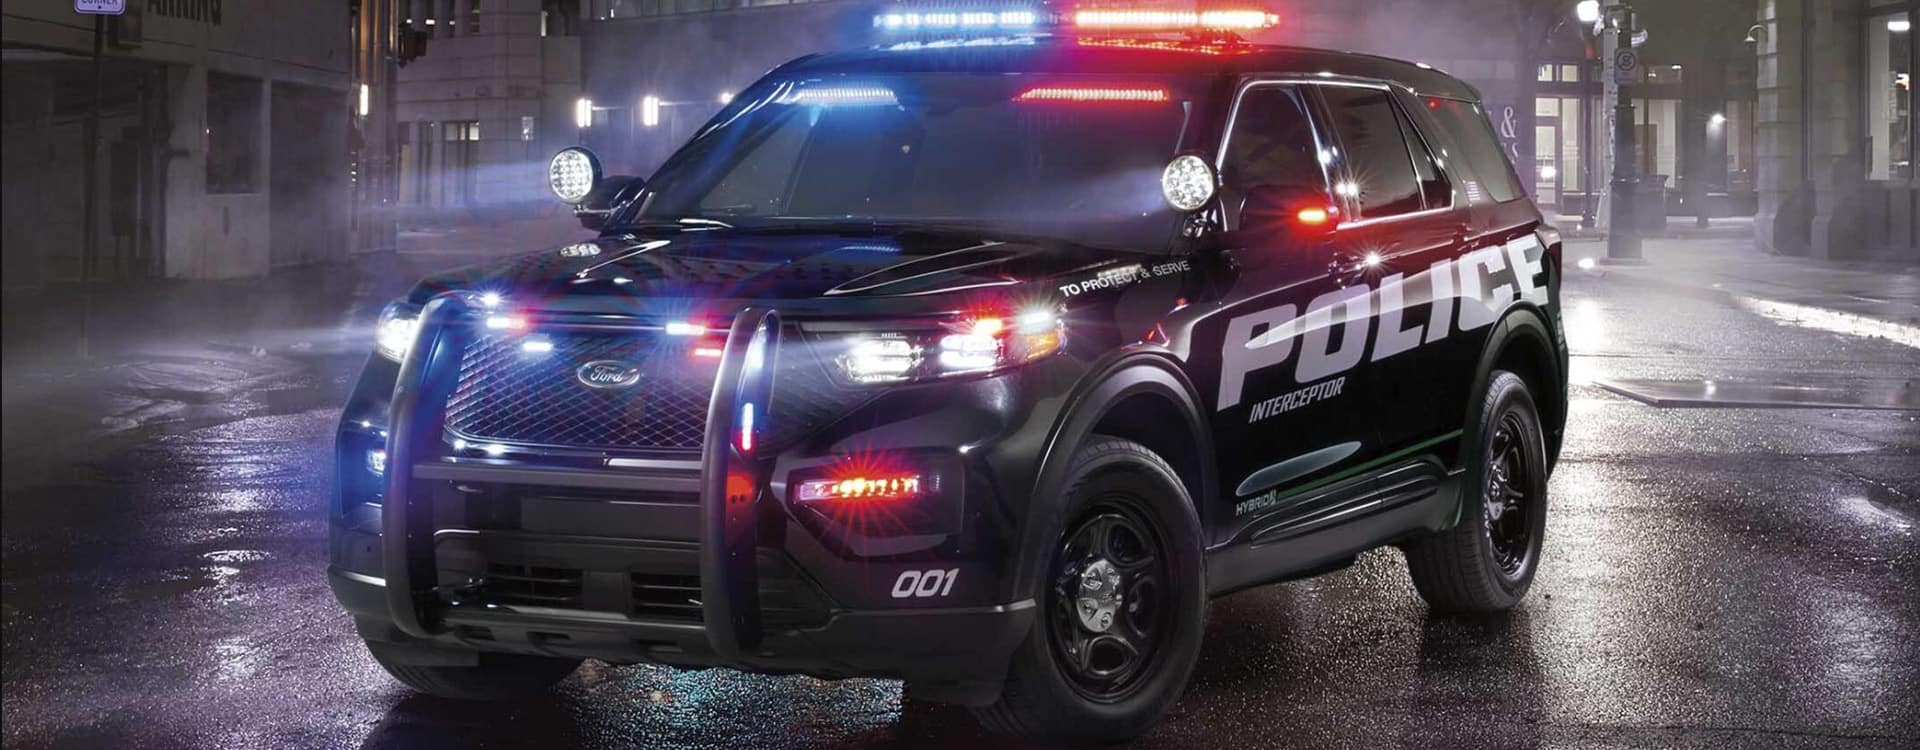 2021 Ford F-150 Police Interceptor Utility in St. Louis